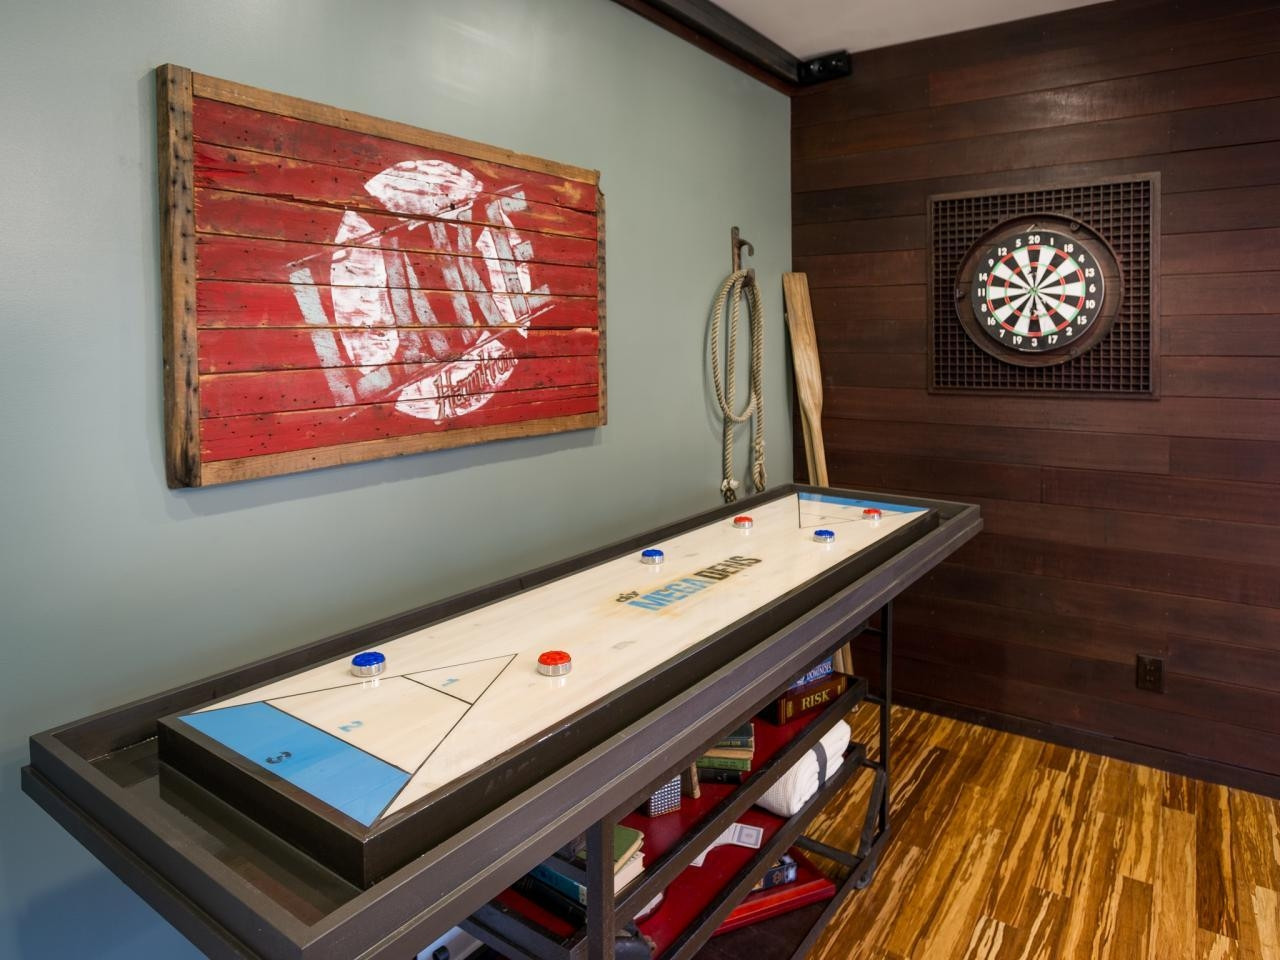 Best ideas about Game Room Wall Art . Save or Pin 20 Best Ideas Wall Art for Game Room Now.